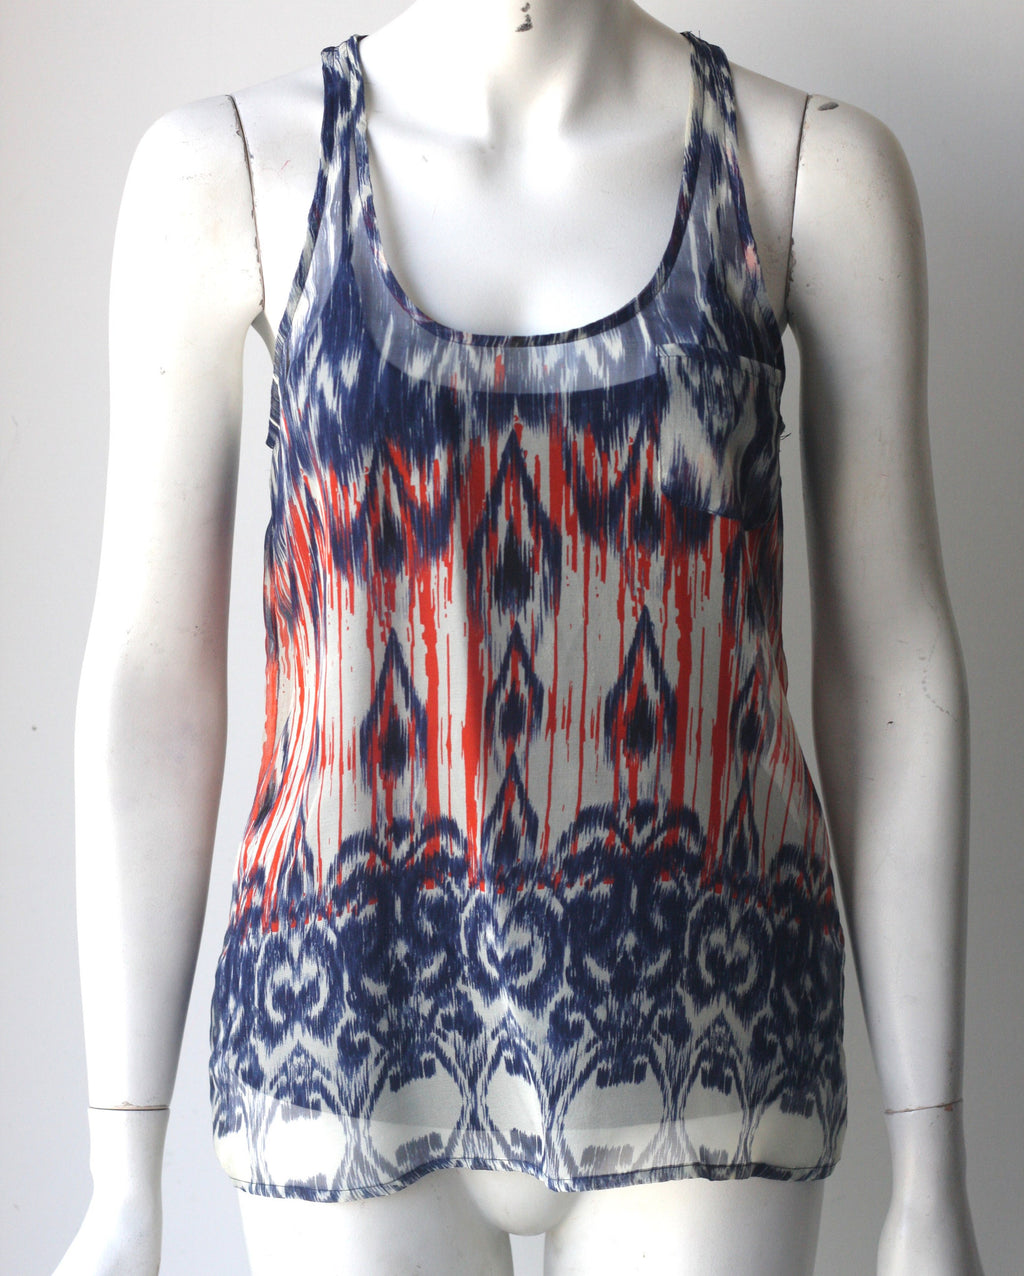 Joie Orange & Navy Sleeveless Silk Blouse - Joyce's Closet  - 1